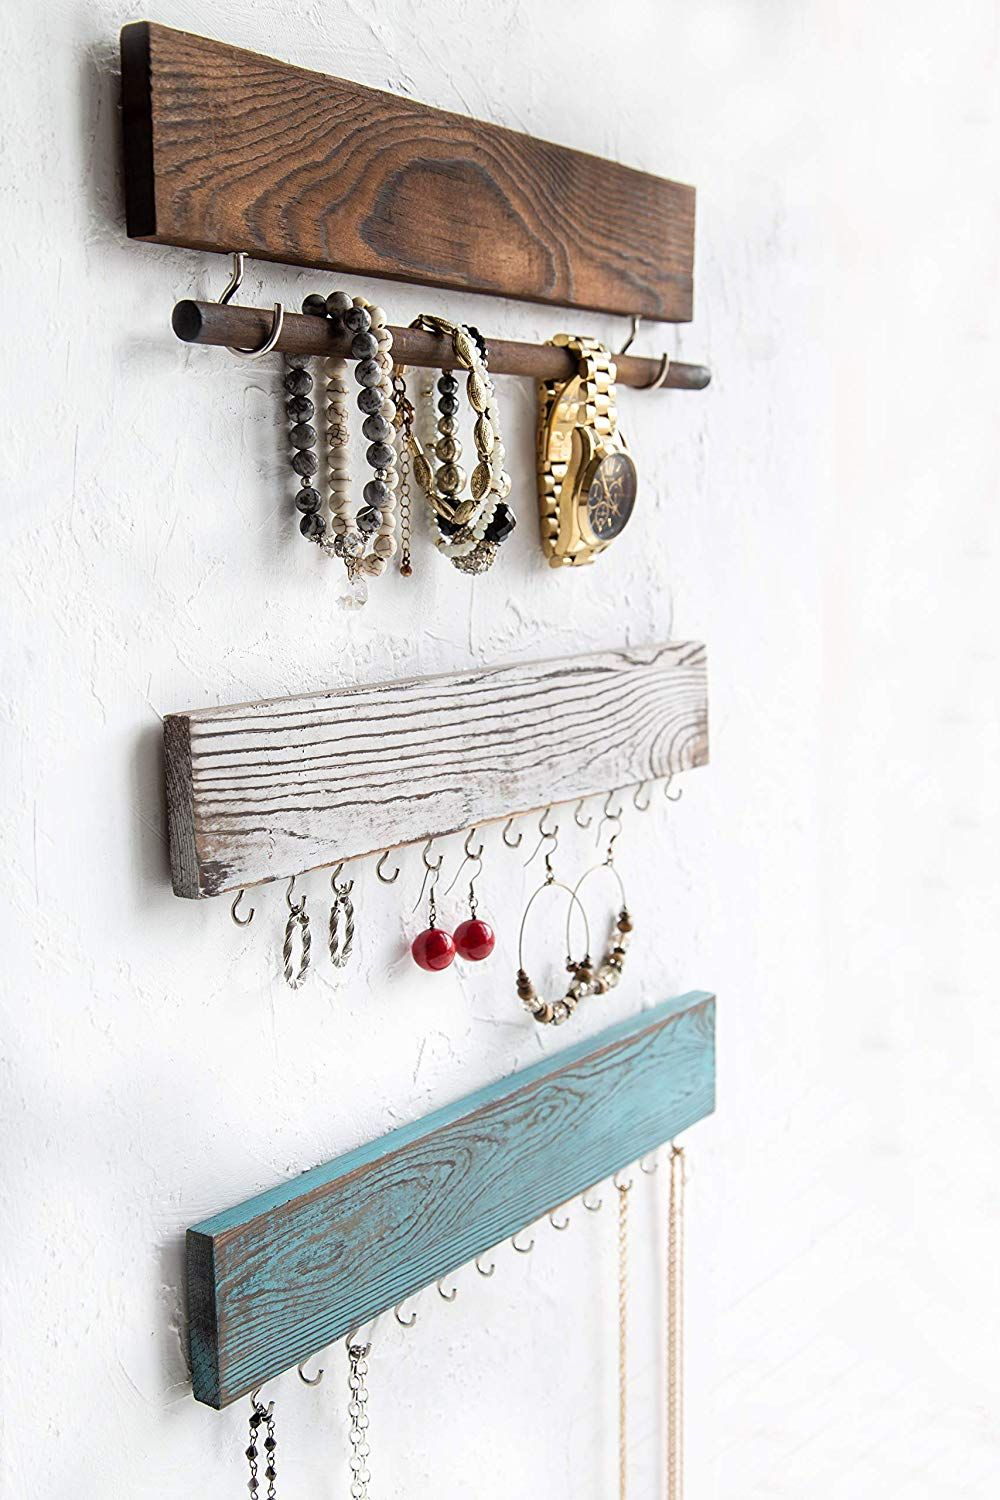 Rustic Home Decor Accents This High Quality Jewelry Holder Is Made Of Sturdy Paulownia Wood Rustic Jewelry Display Wood Jewelry Display Jewelry Organizer Wall